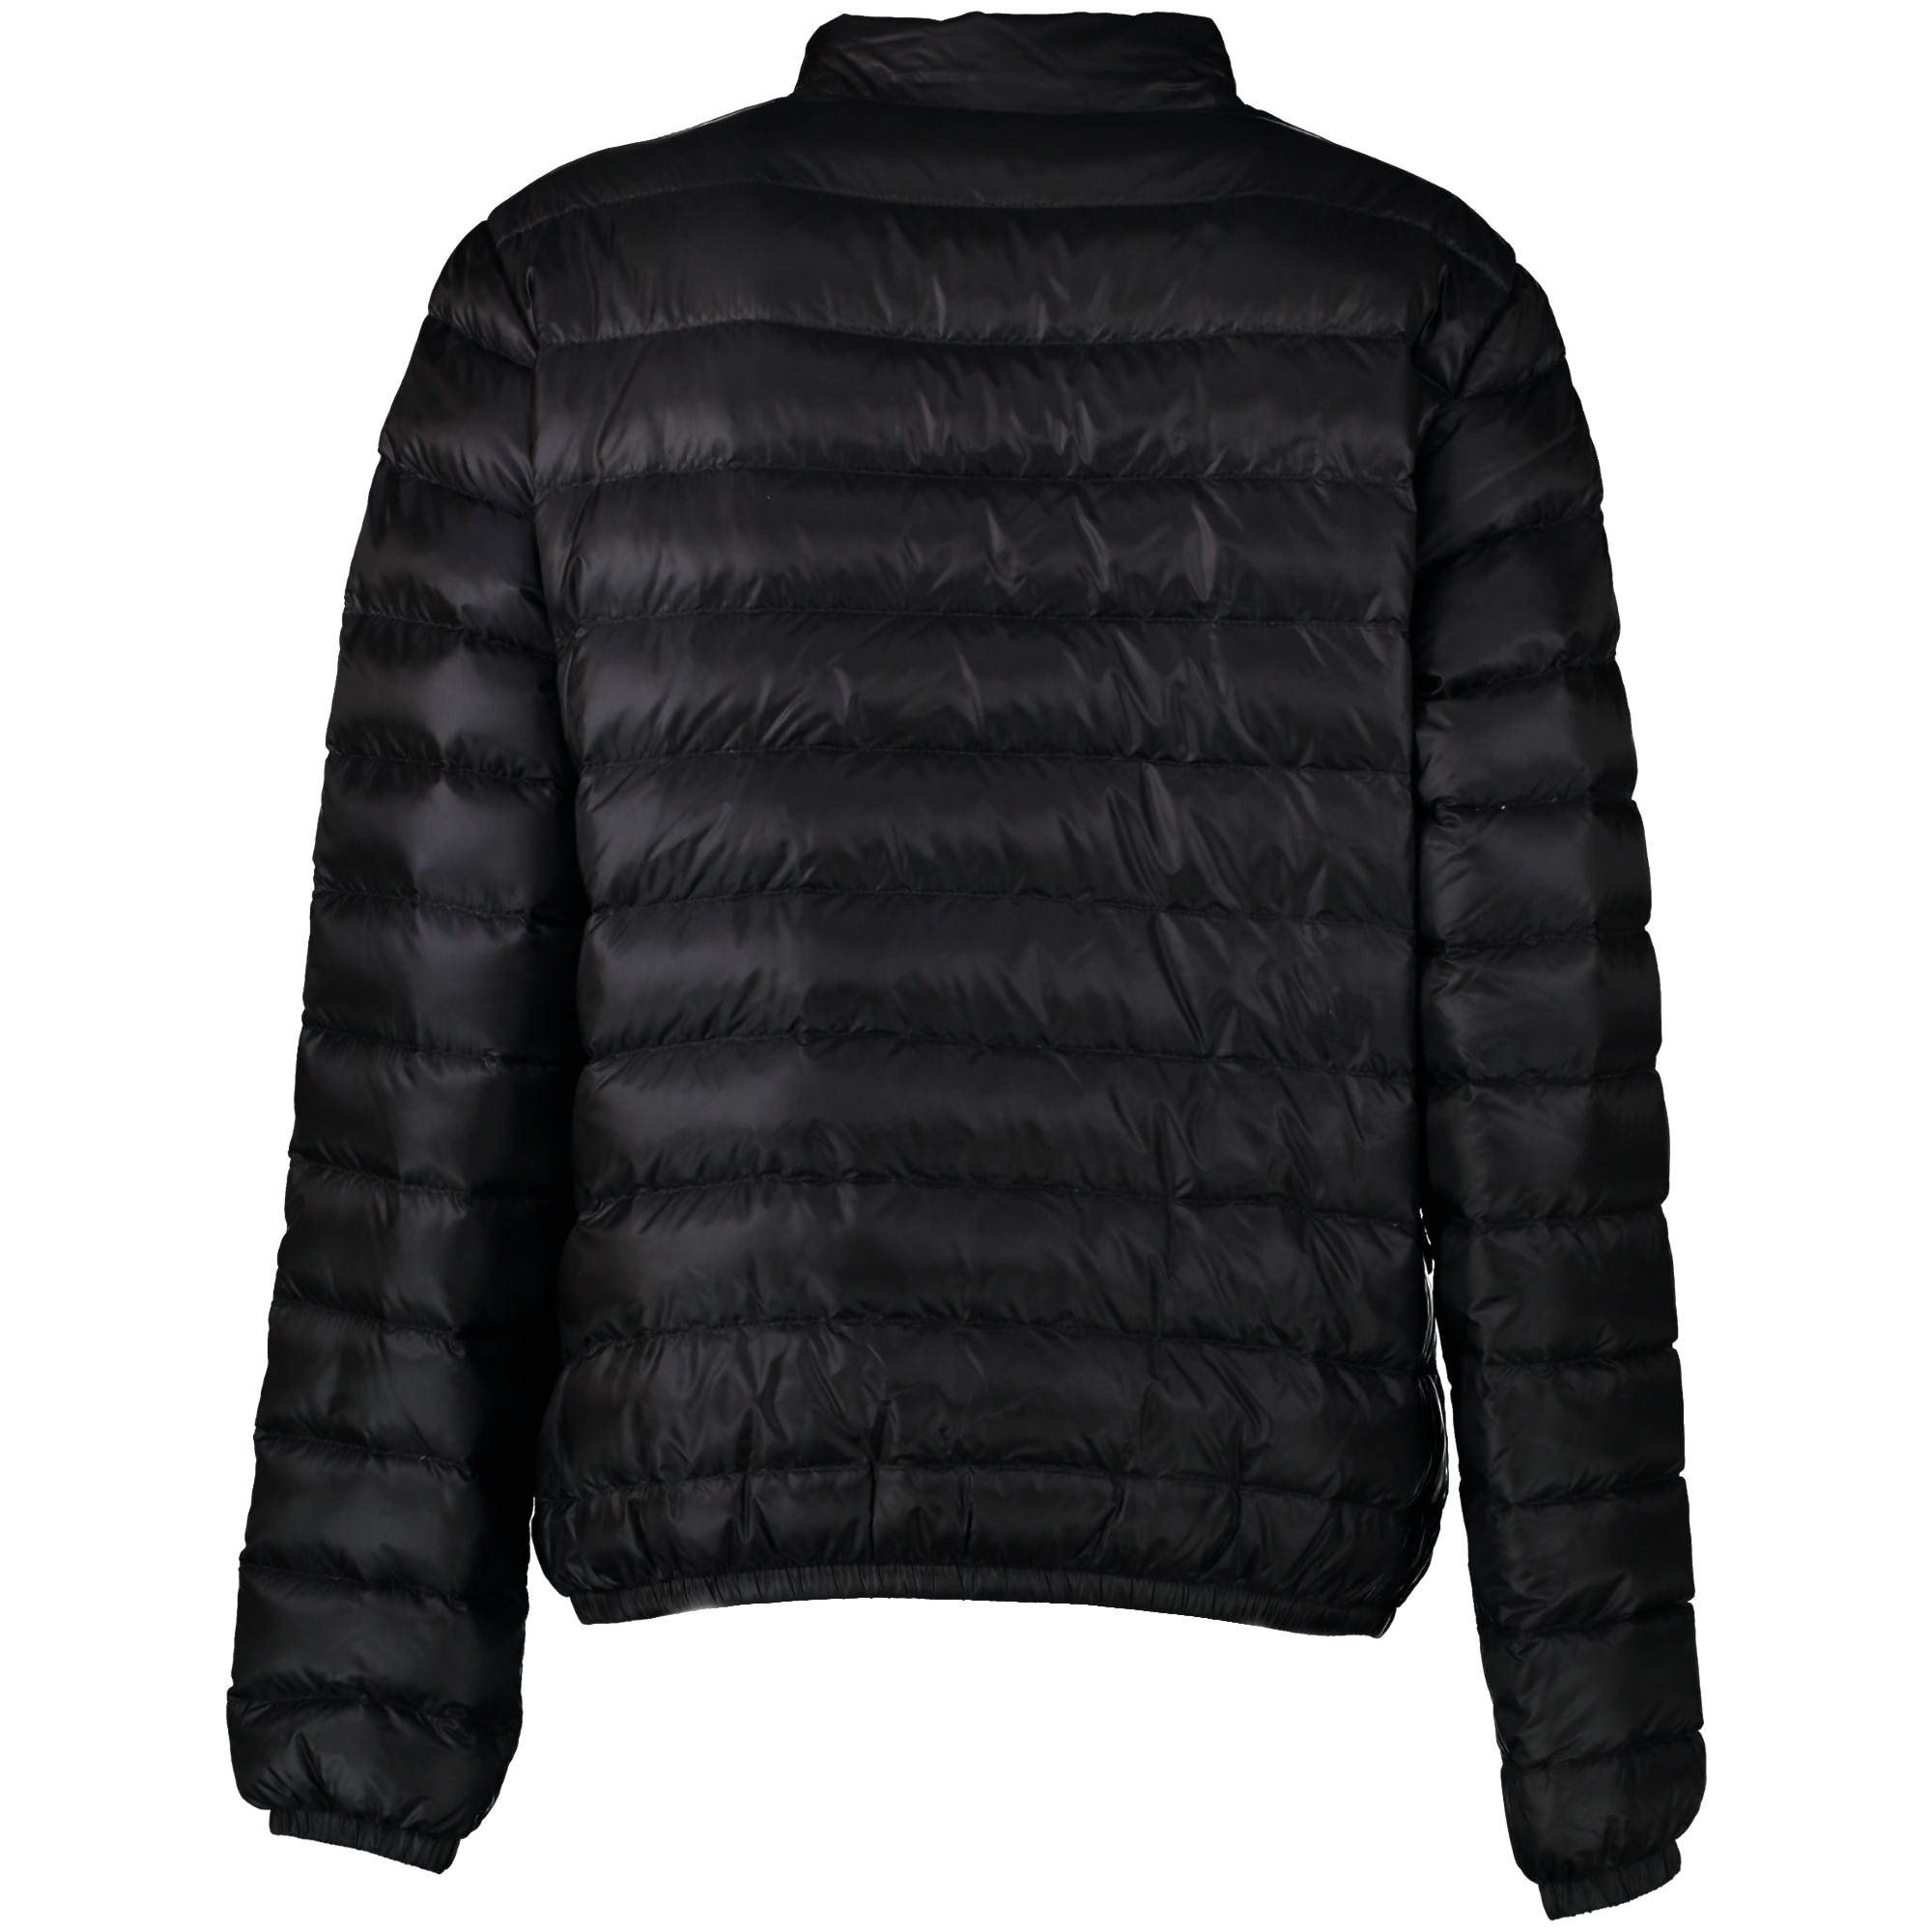 We buy and sell your authentic Moncler Black New Down Jacket - size 4